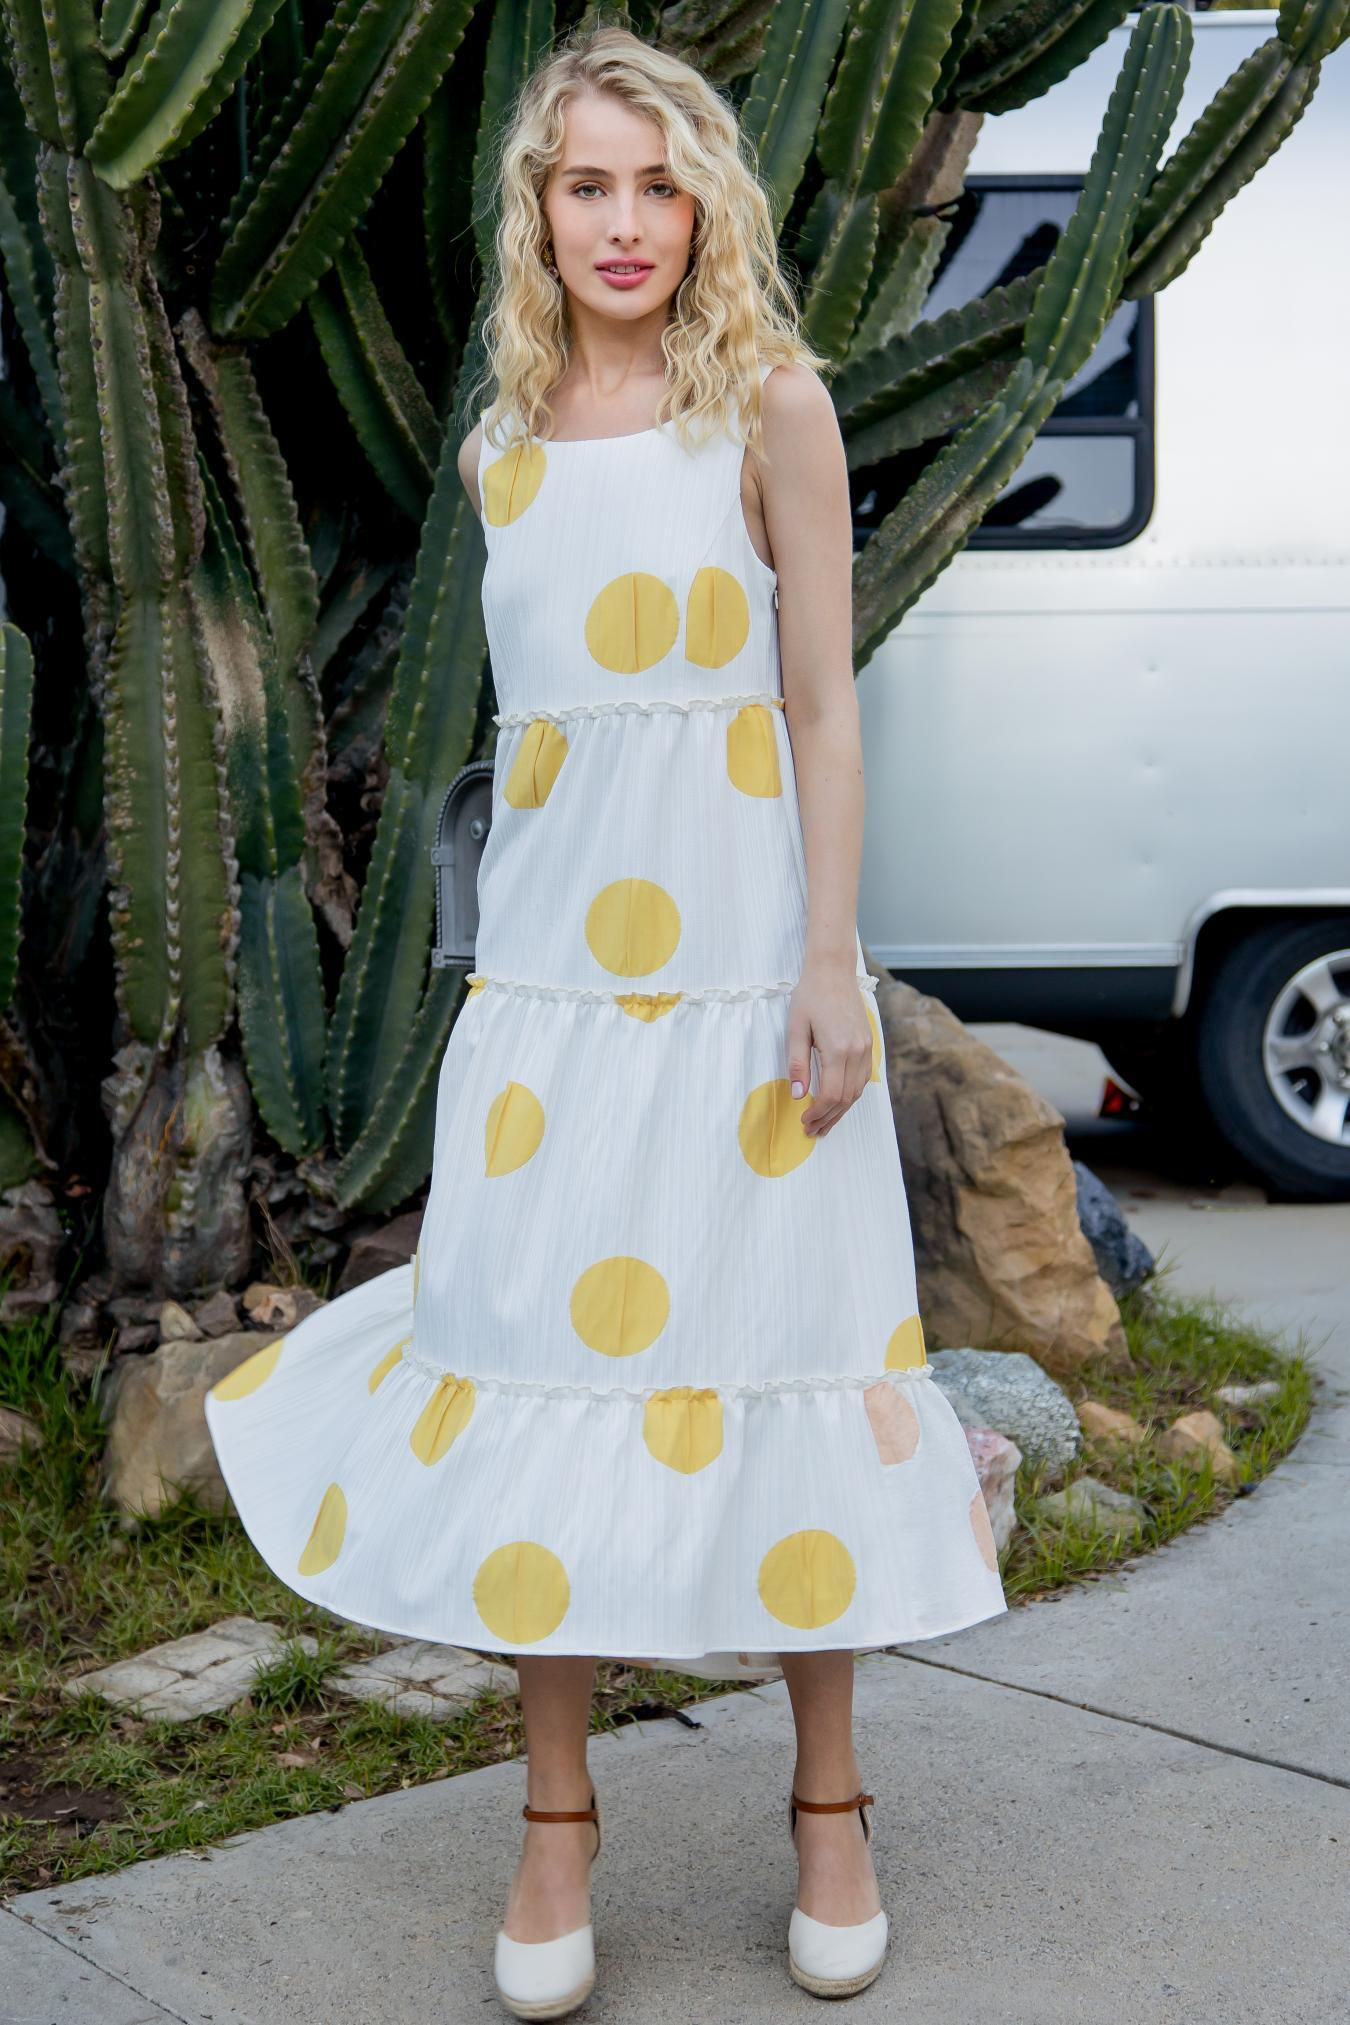 Eva Franco Dress Yellow Polka Dot Maxi Dress PRE-ORDER